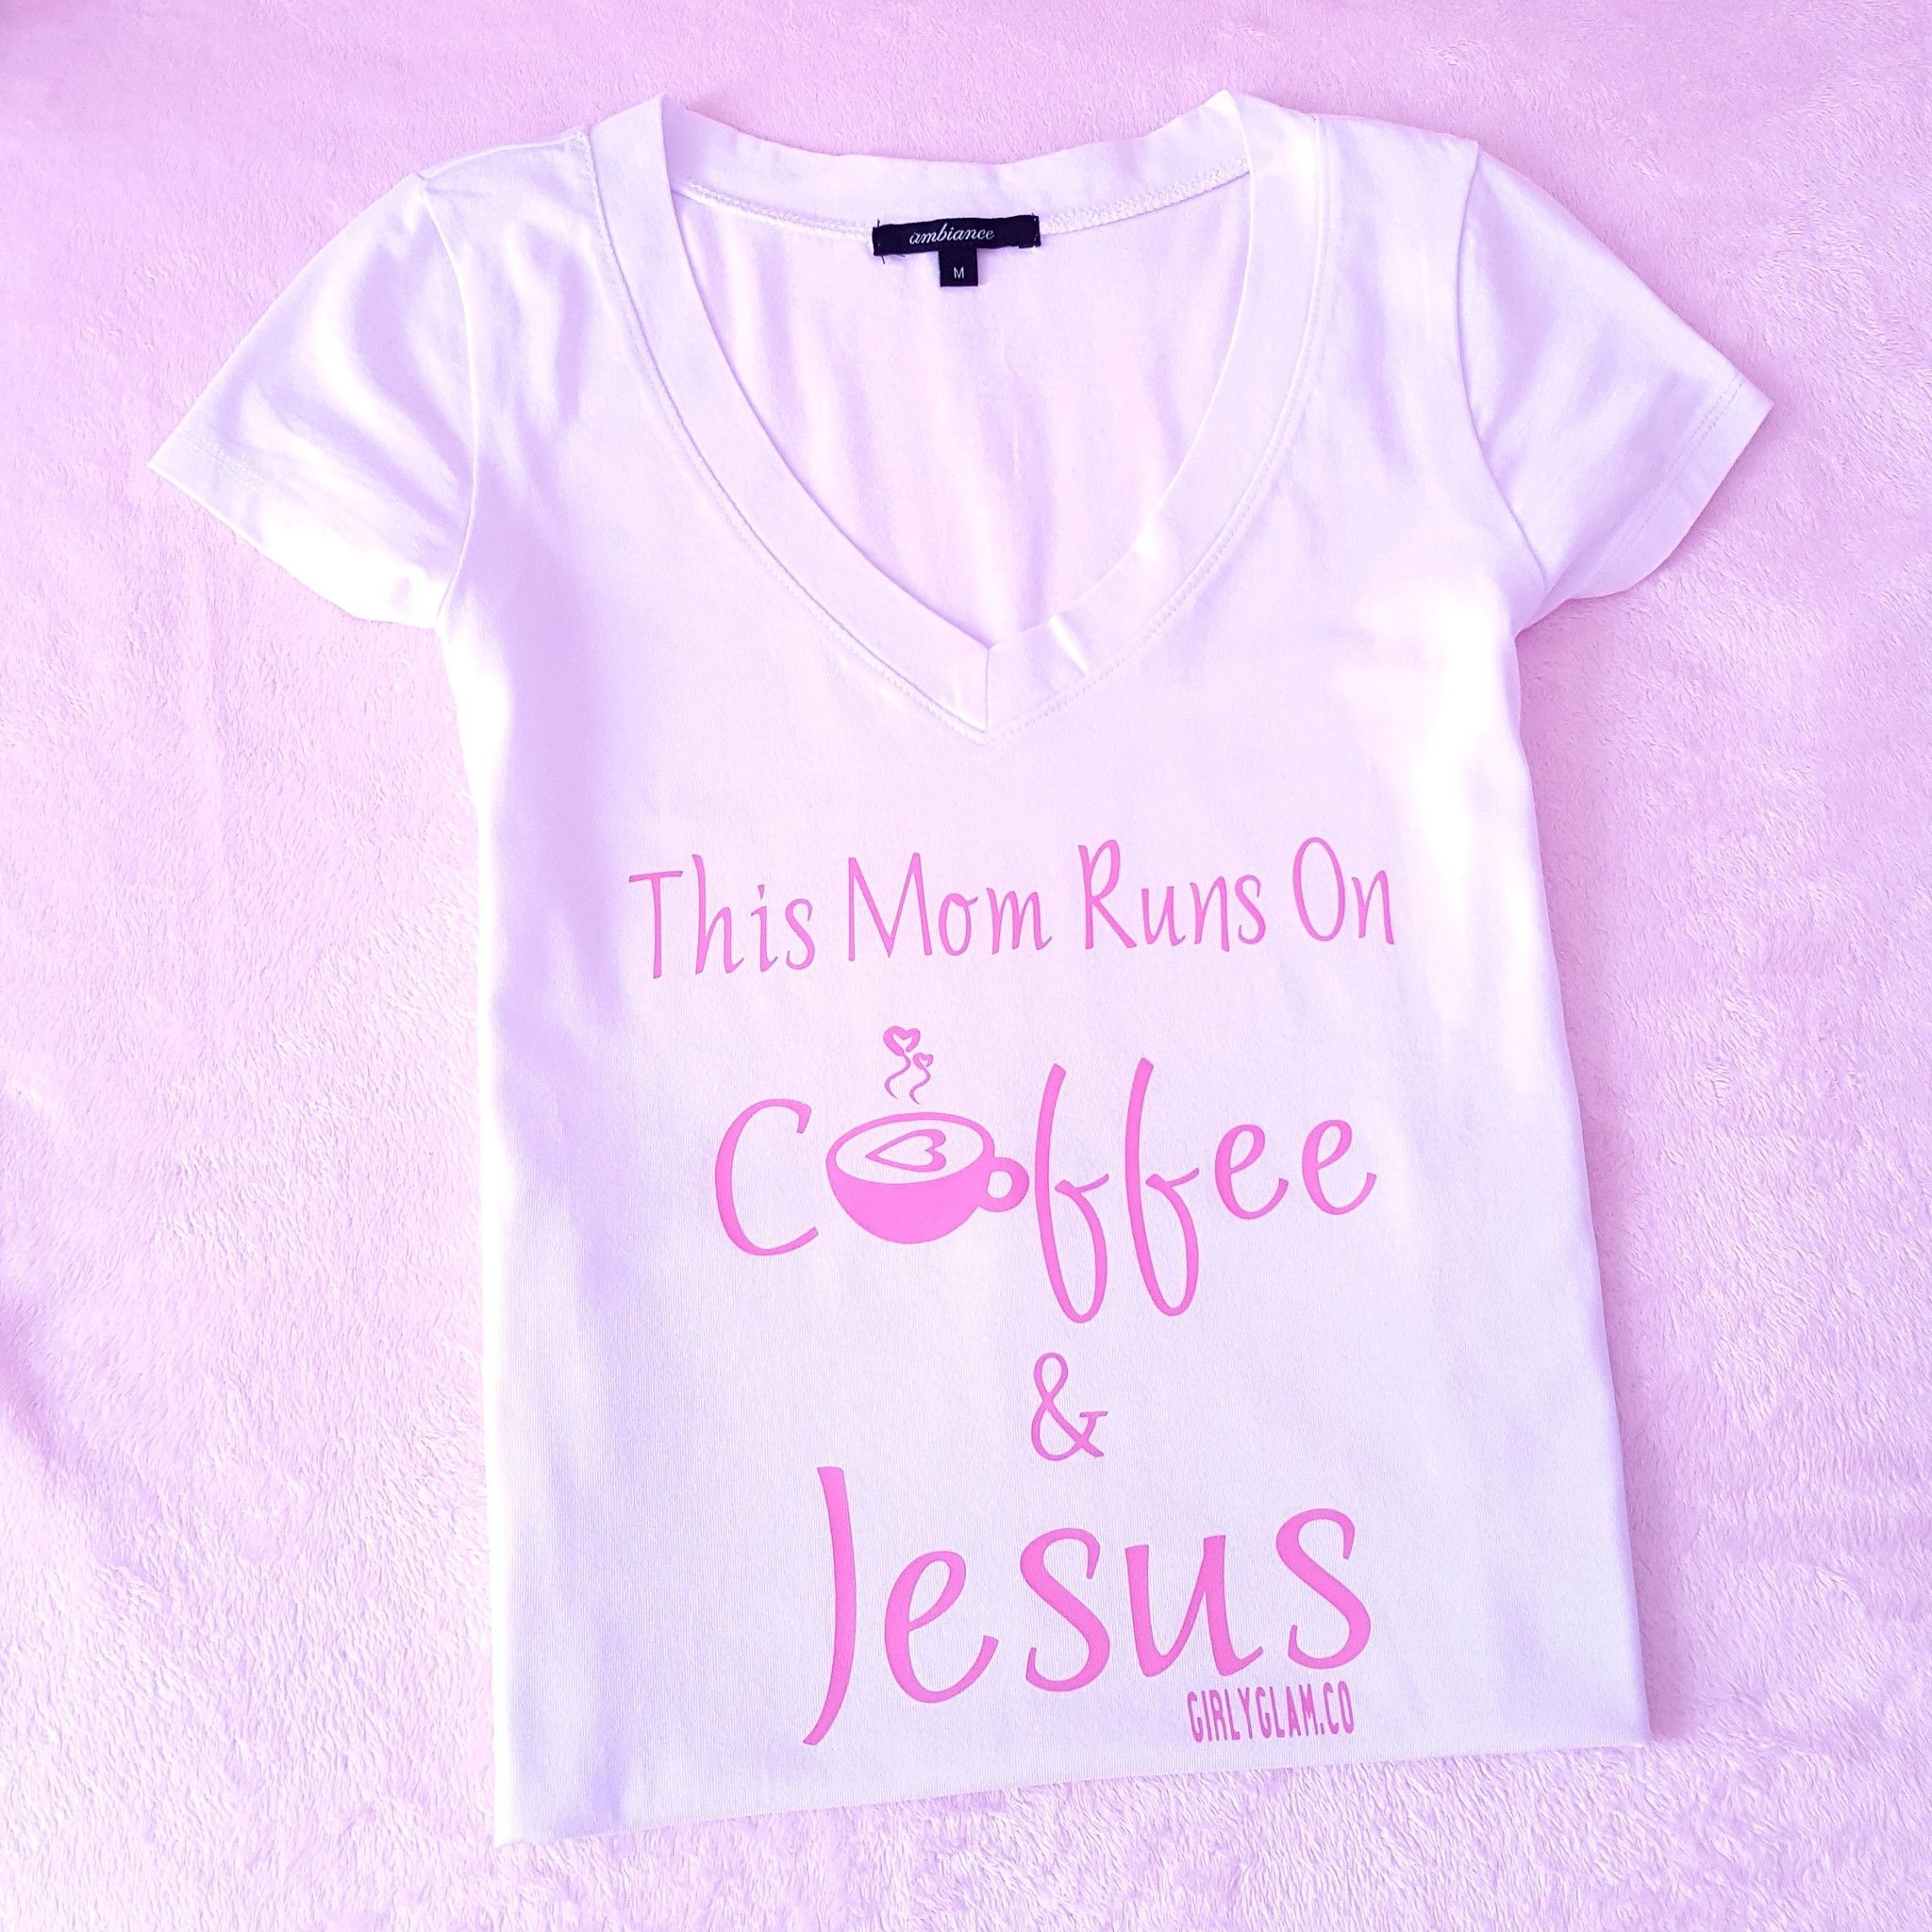 Coffee & Jesus | Shorts, Shirts and Products